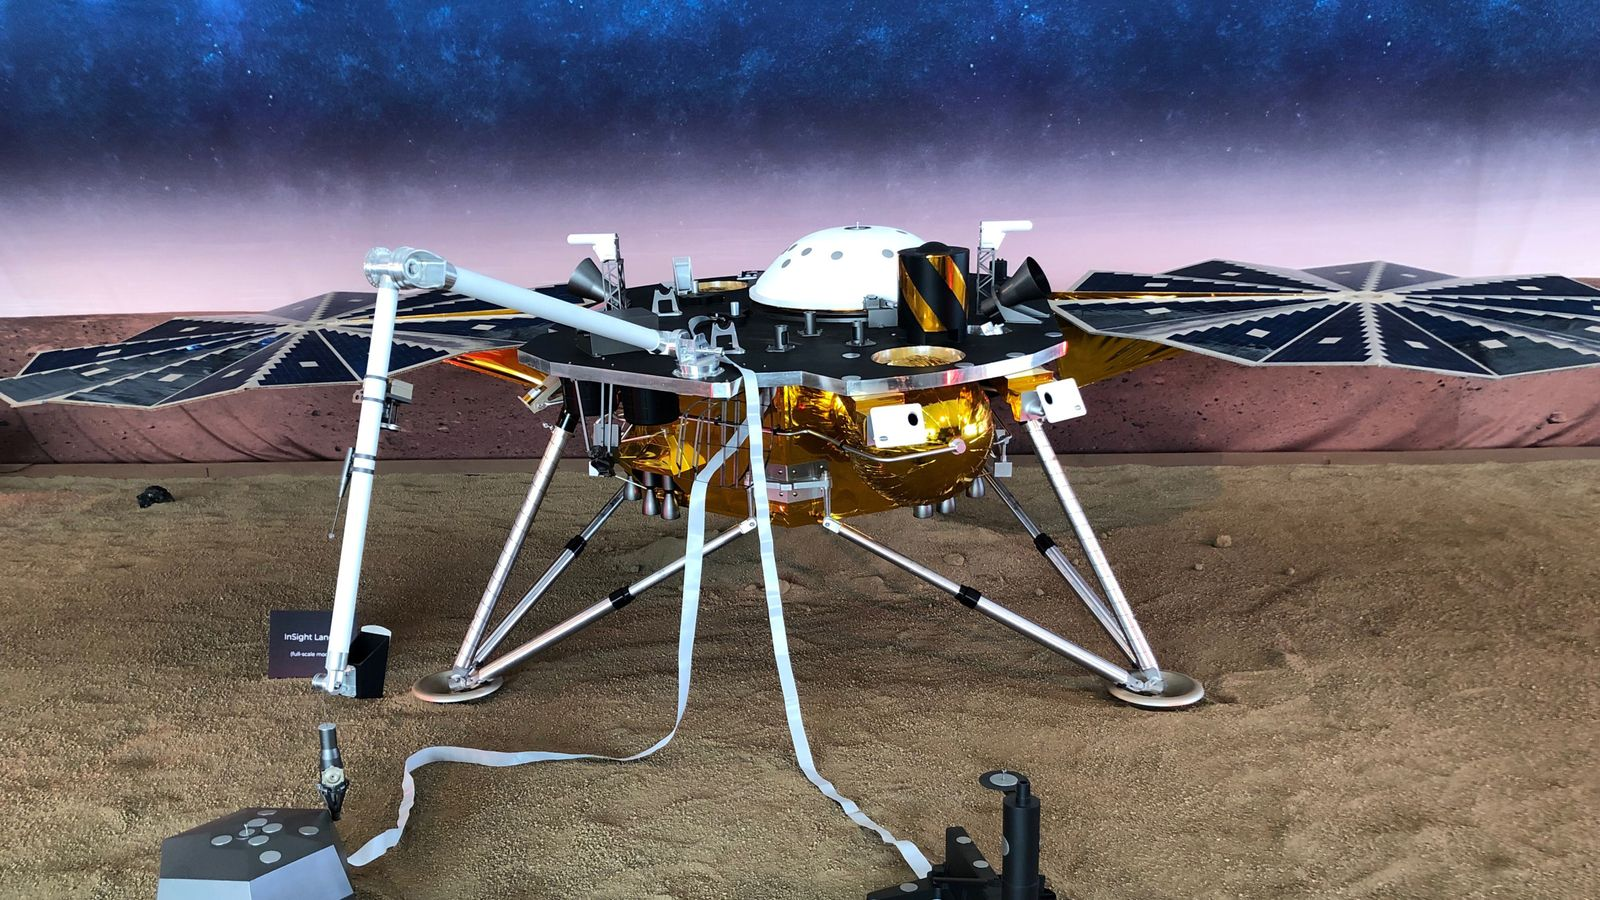 mars rover insight photos - photo #8